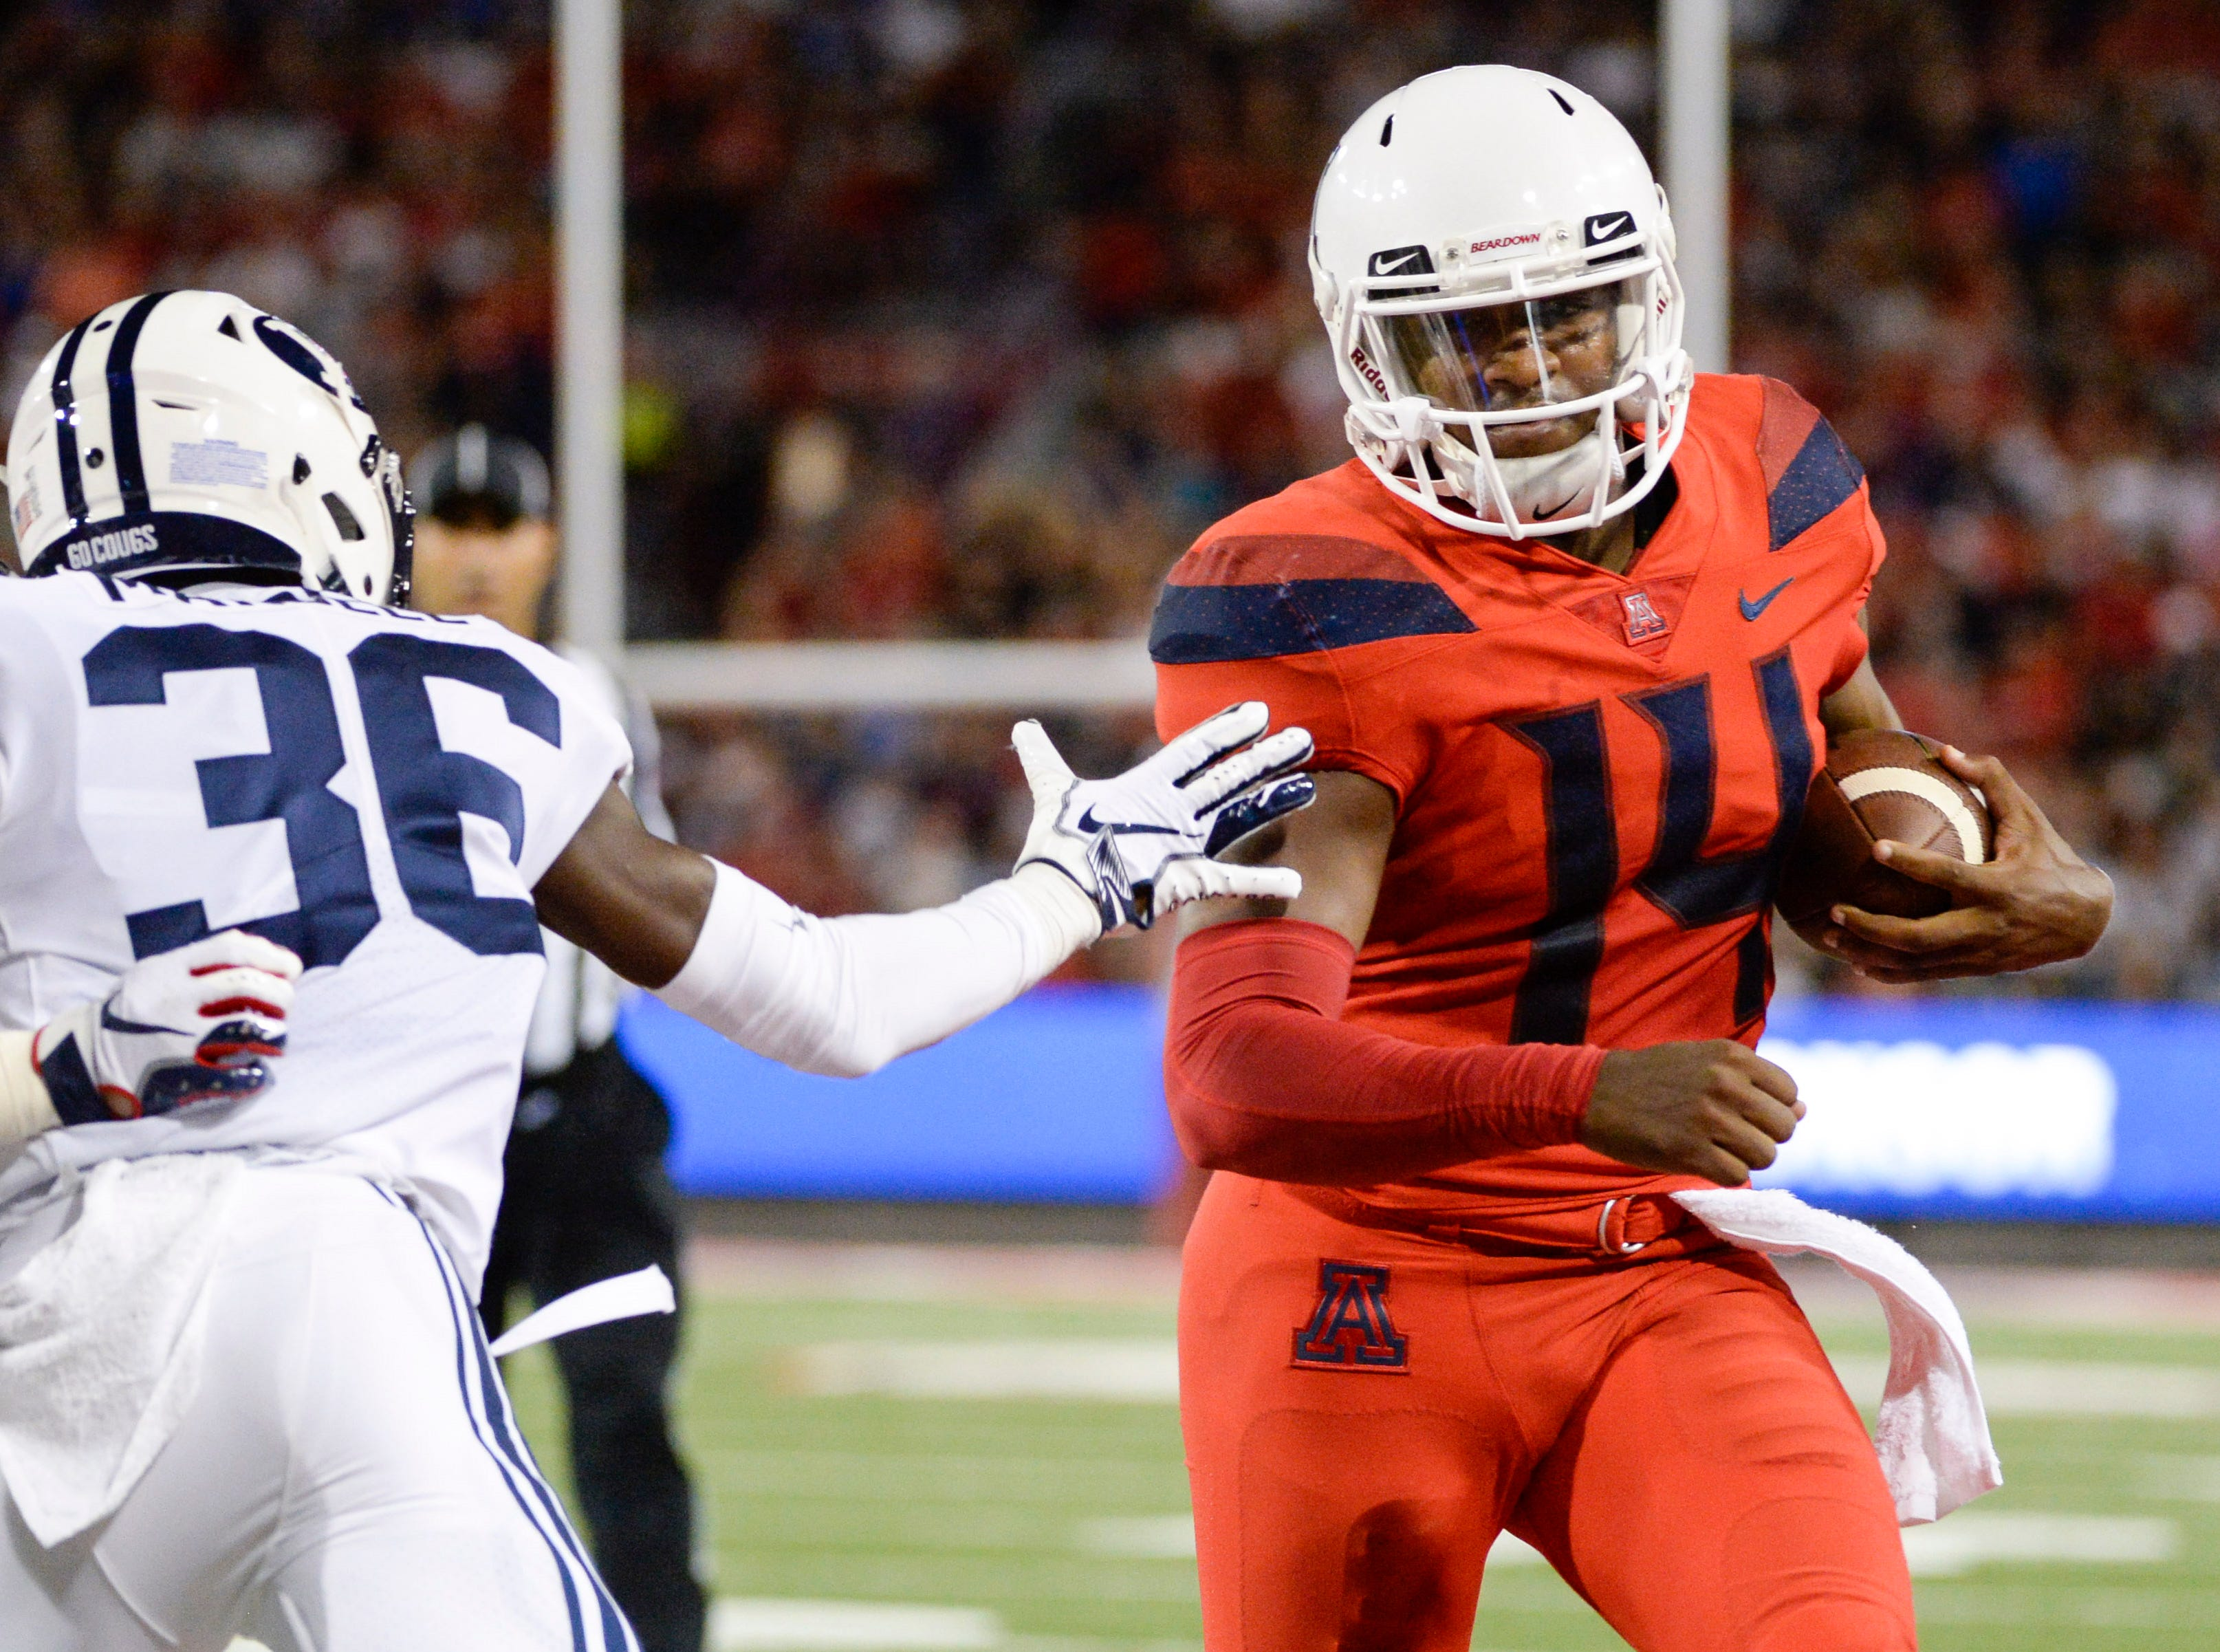 Sep 1, 2018; Tucson, AZ, USA; Arizona Wildcats quarterback Khalil Tate (14) runs the ball against Brigham Young Cougars defensive back D'Angelo Mandell (36) during the first half at Arizona Stadium.